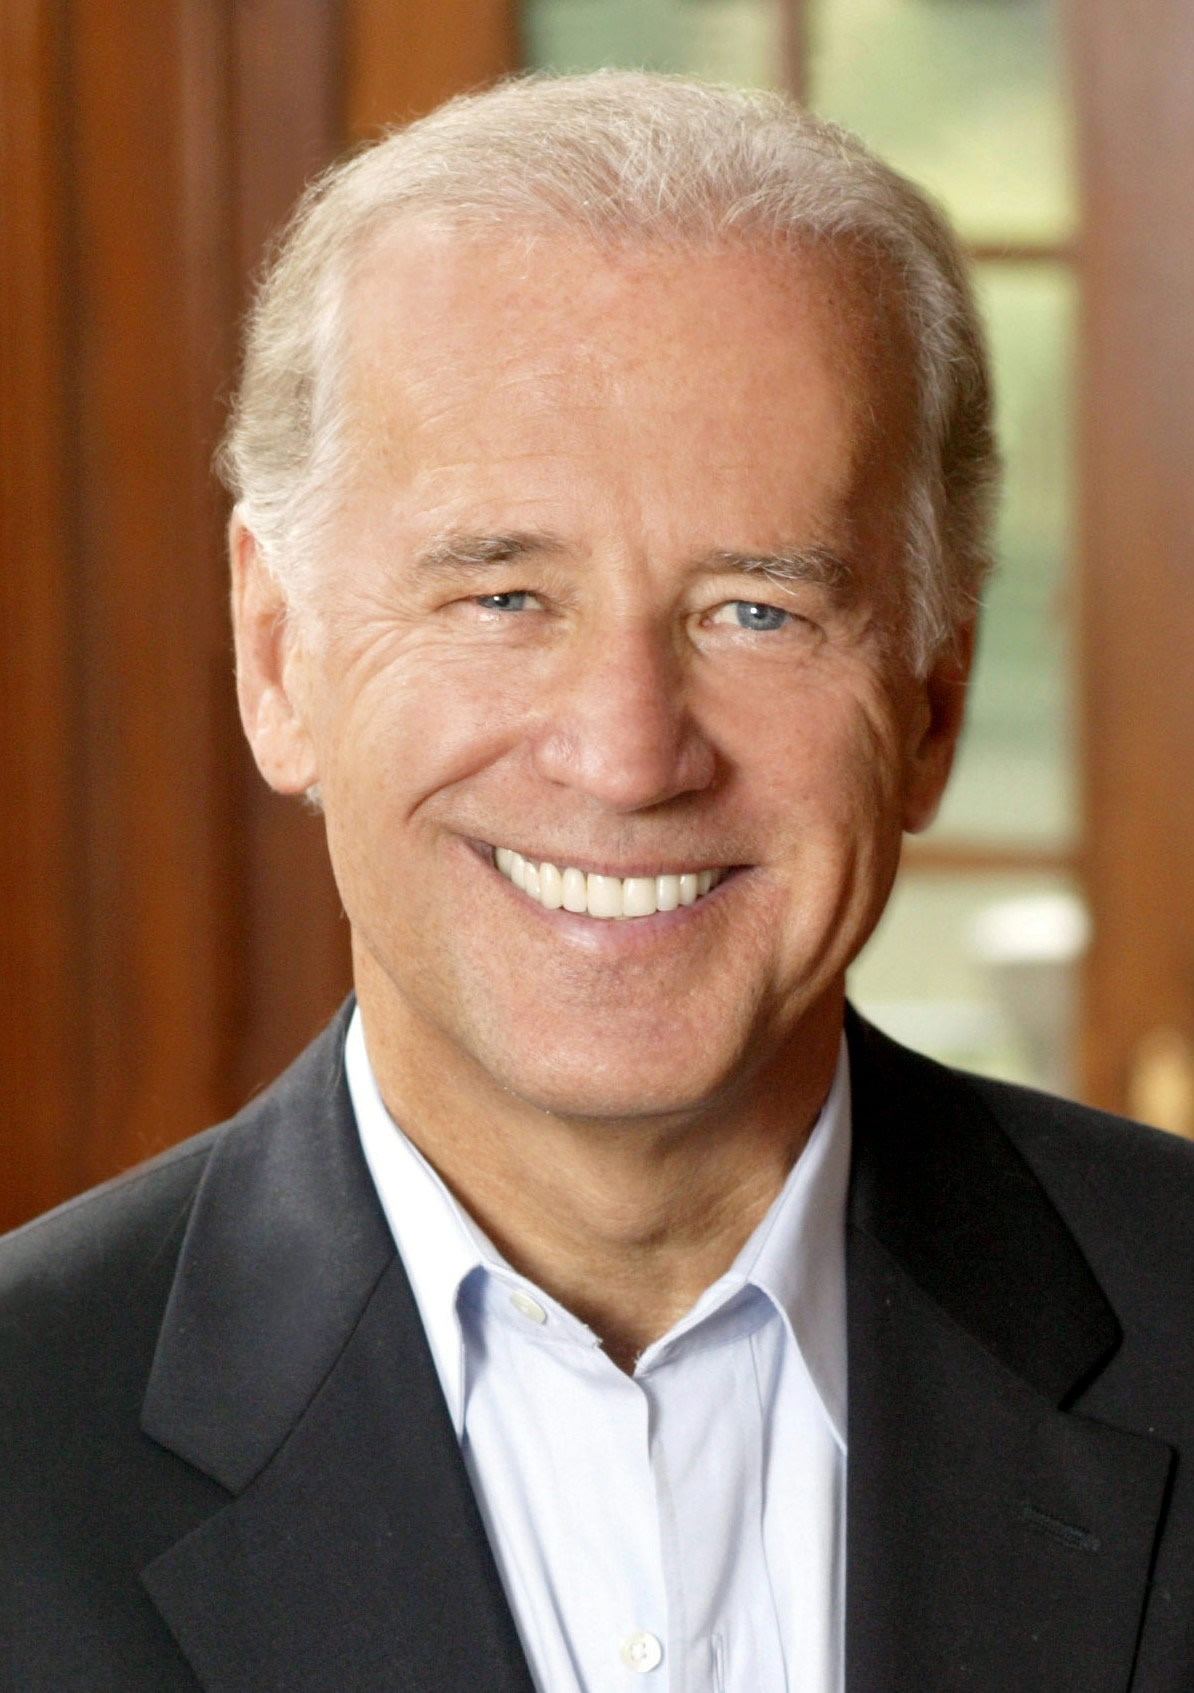 Joe Biden Our Vice President